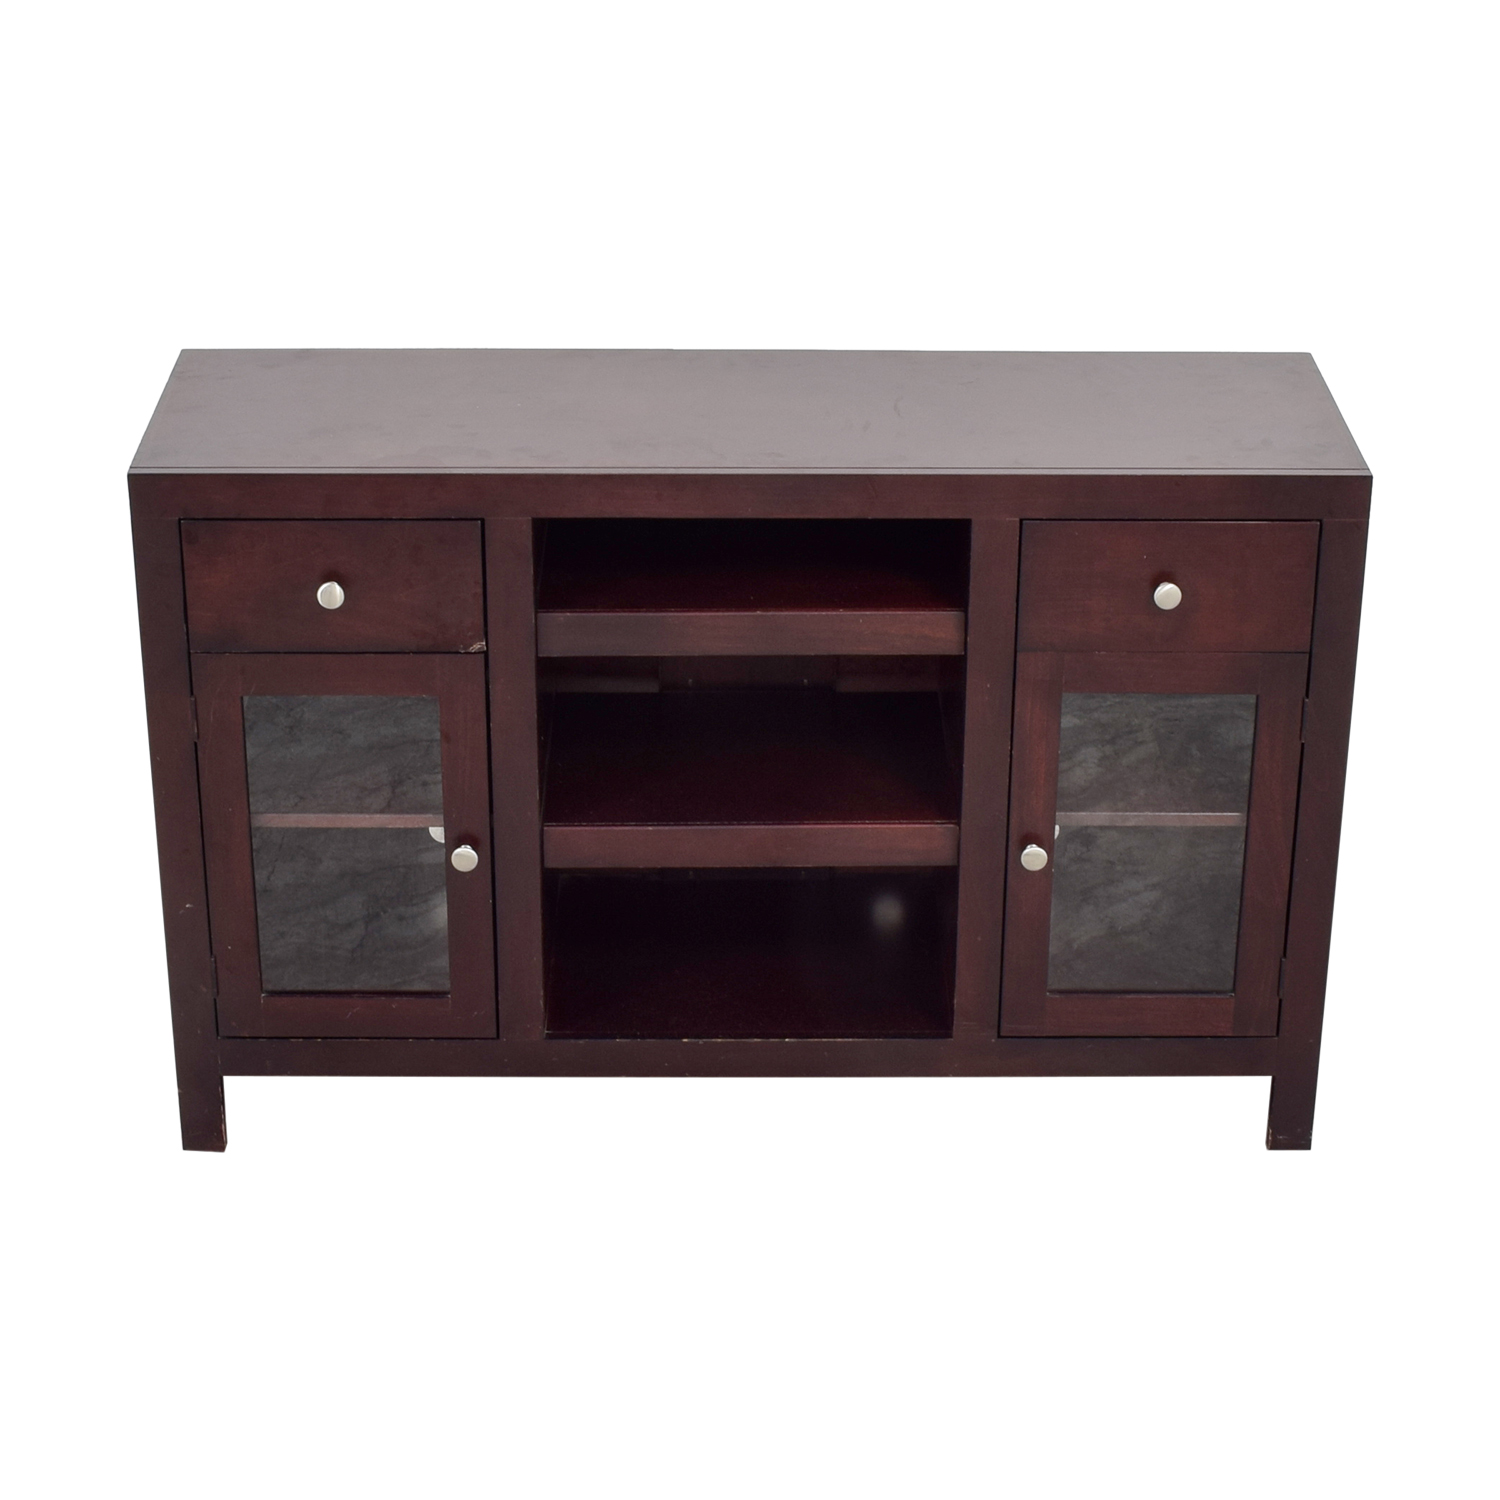 Raymour & Flanigan Two Drawer and Glass Cabinet TV Console / Storage